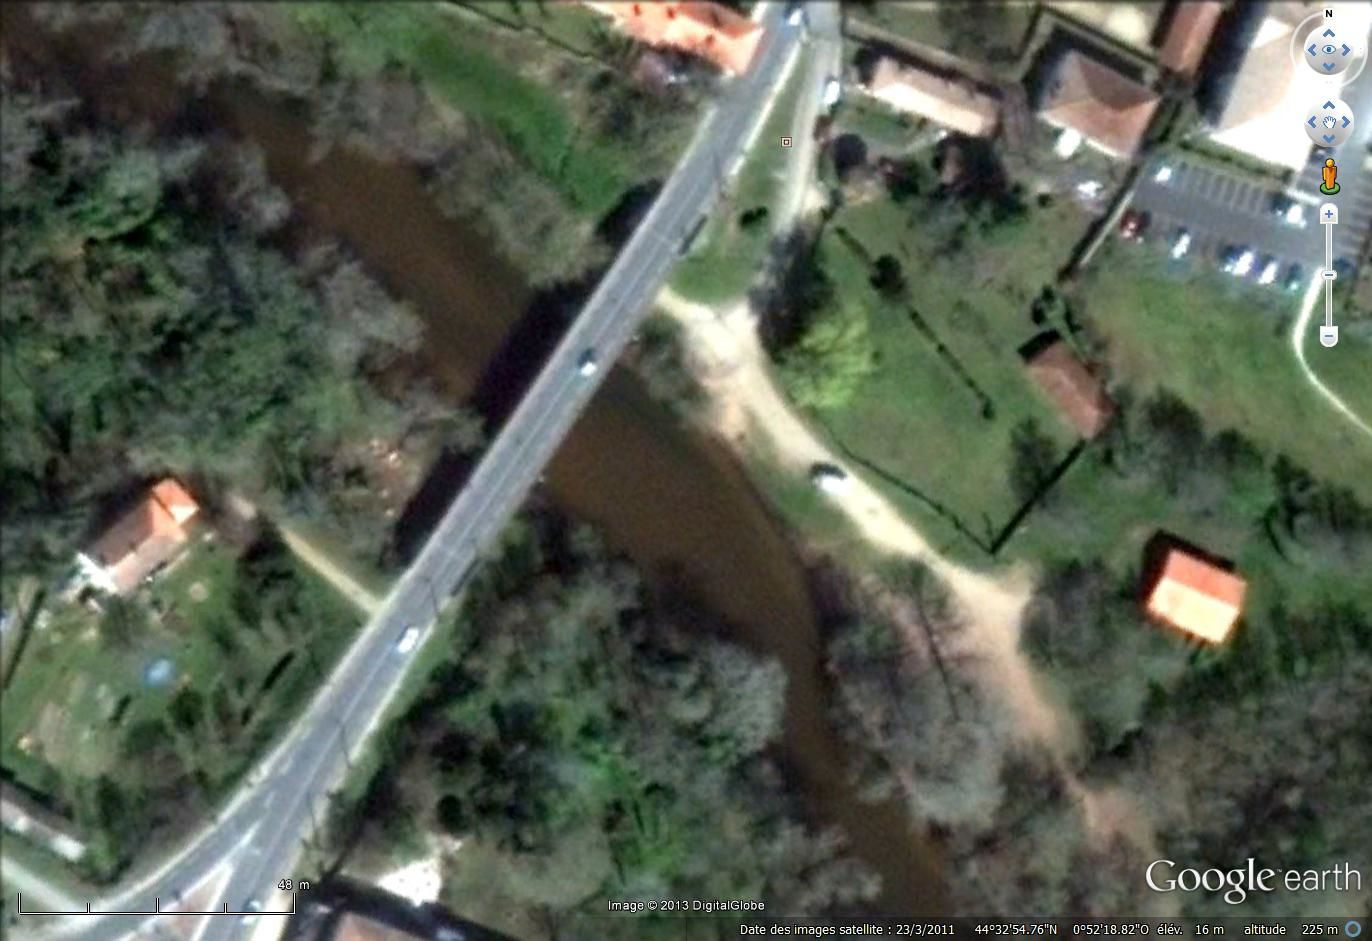 Imagerie satellitale Google earth 2011